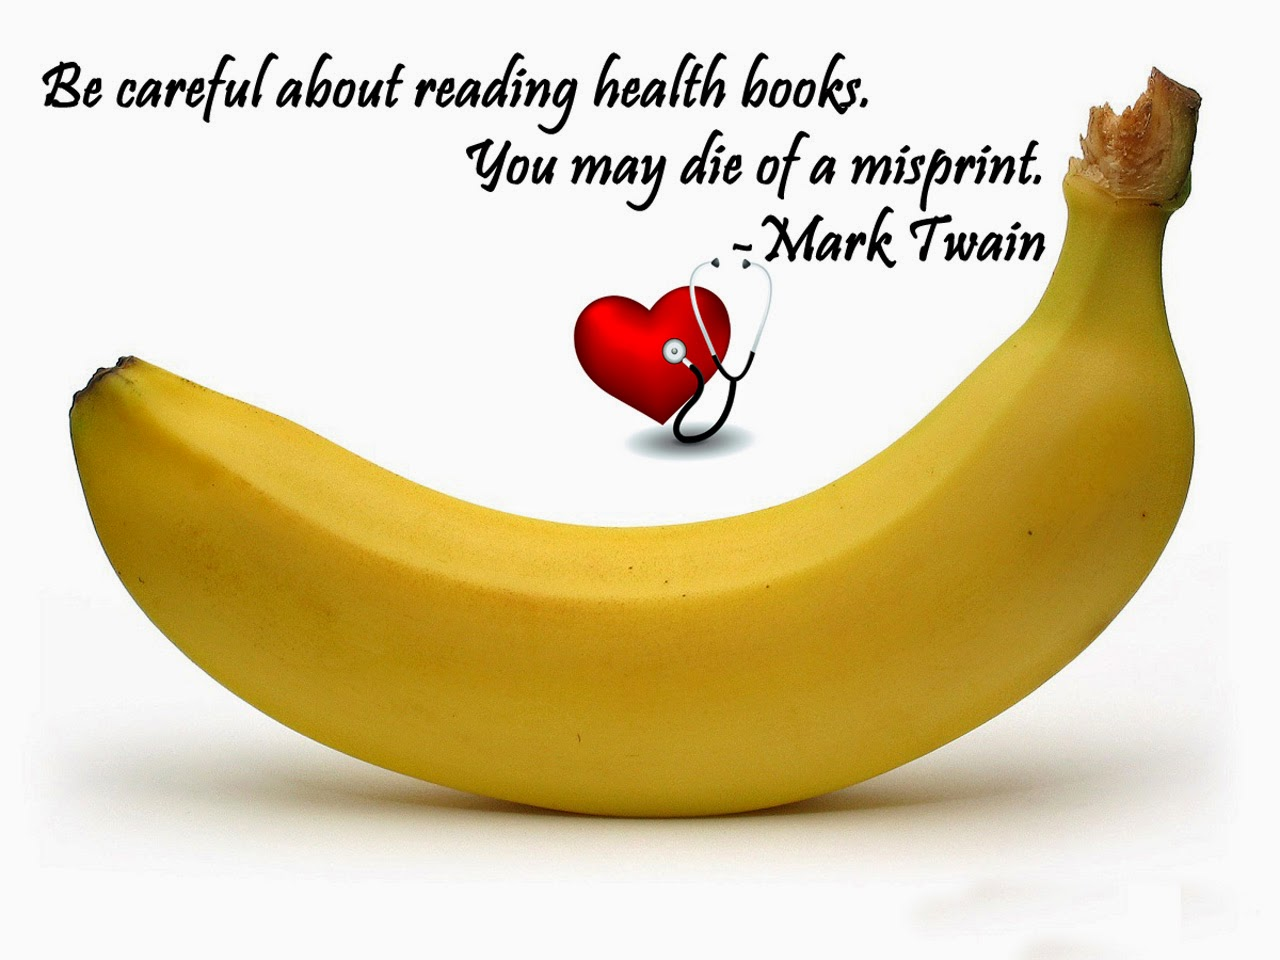 Health-quotes-Be-carefull-about-reading-health-books.jpg